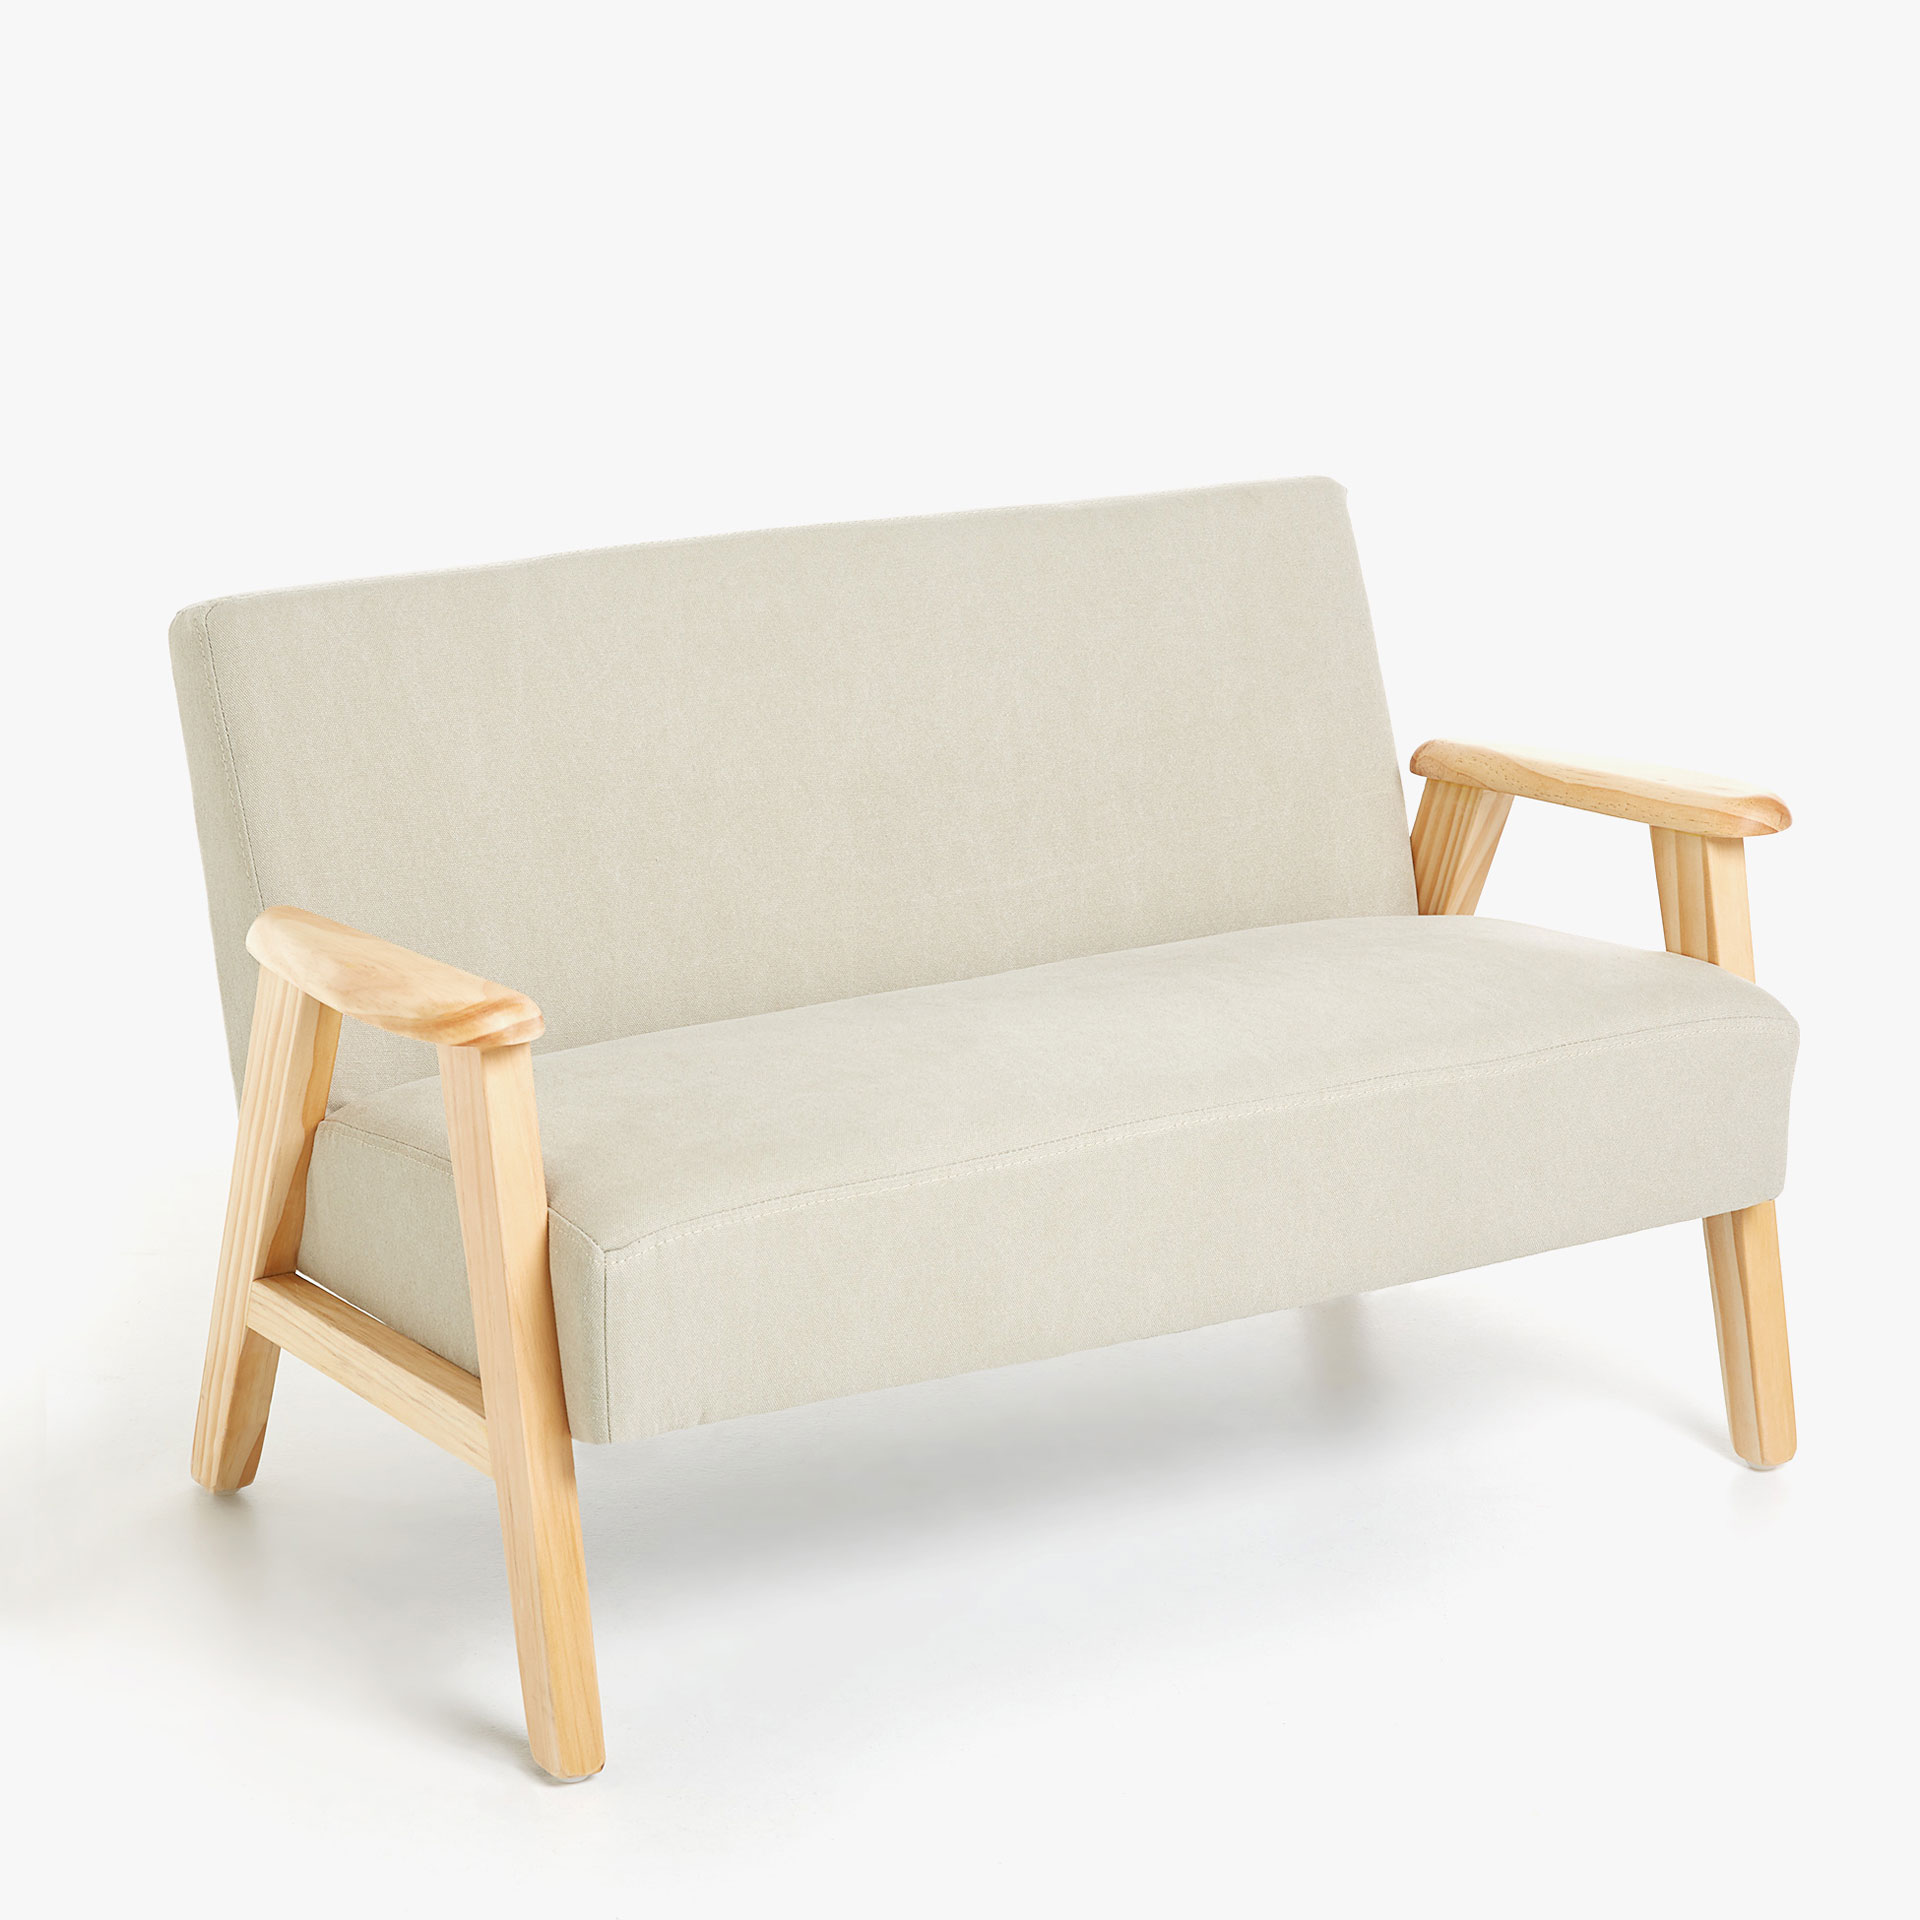 TWO-SEAT COUCH WITH WOODEN FRAME